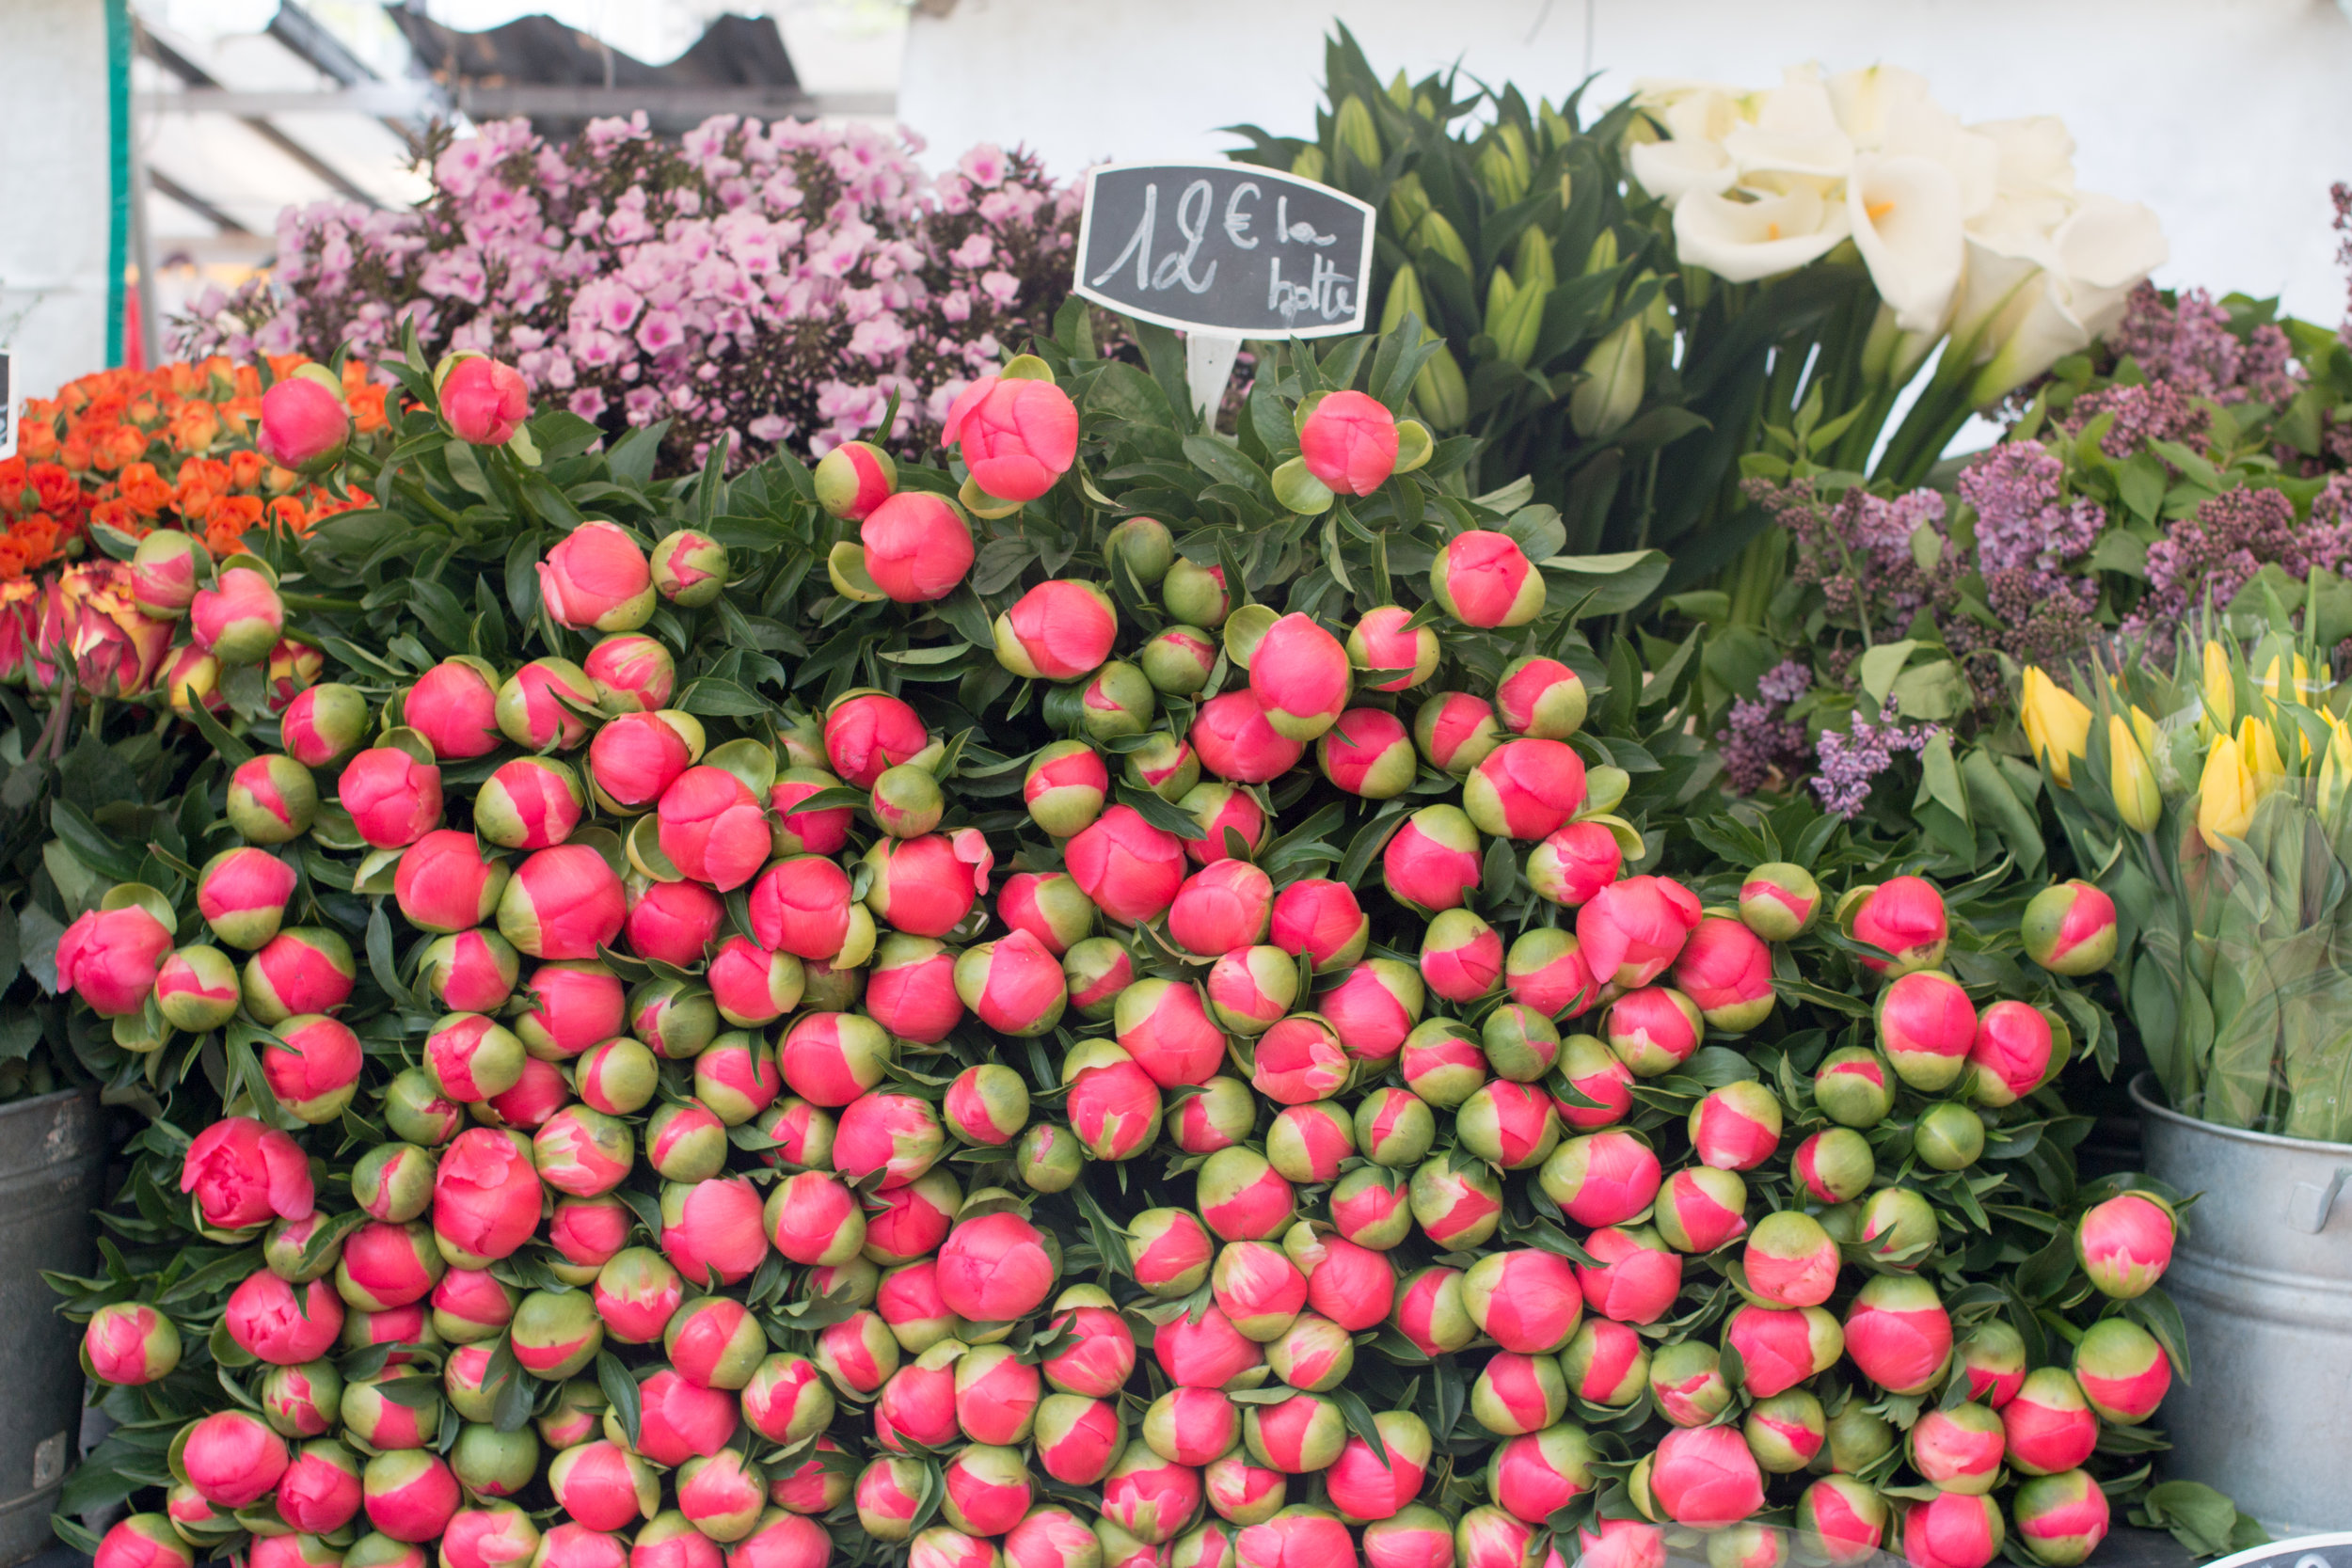 where to buy peonies in paris, france via everyday parisian rebecca plotnick